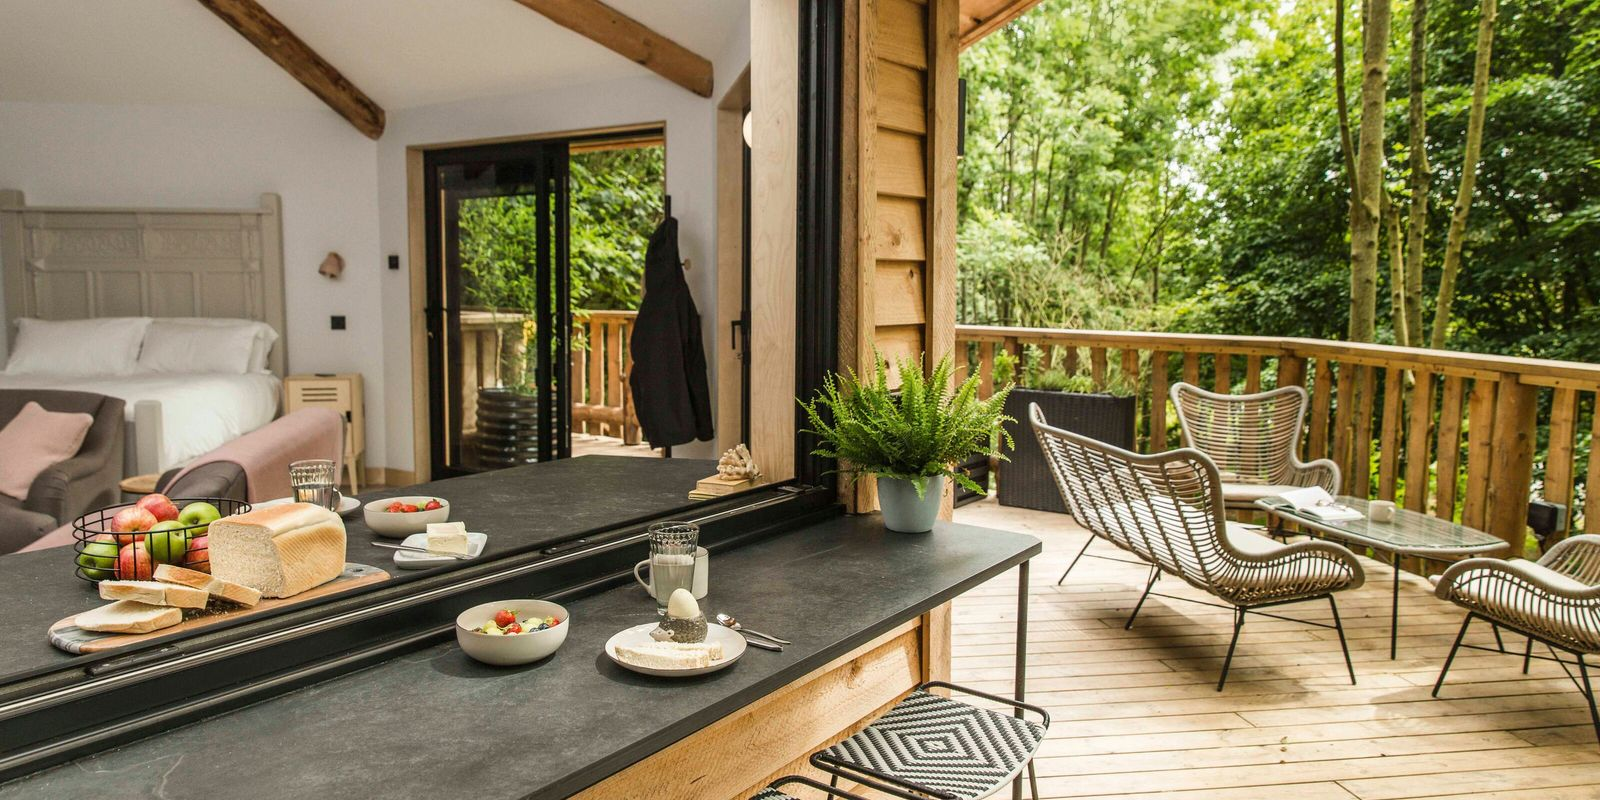 Win a three-night stay at a treehouse hideaway in Devon